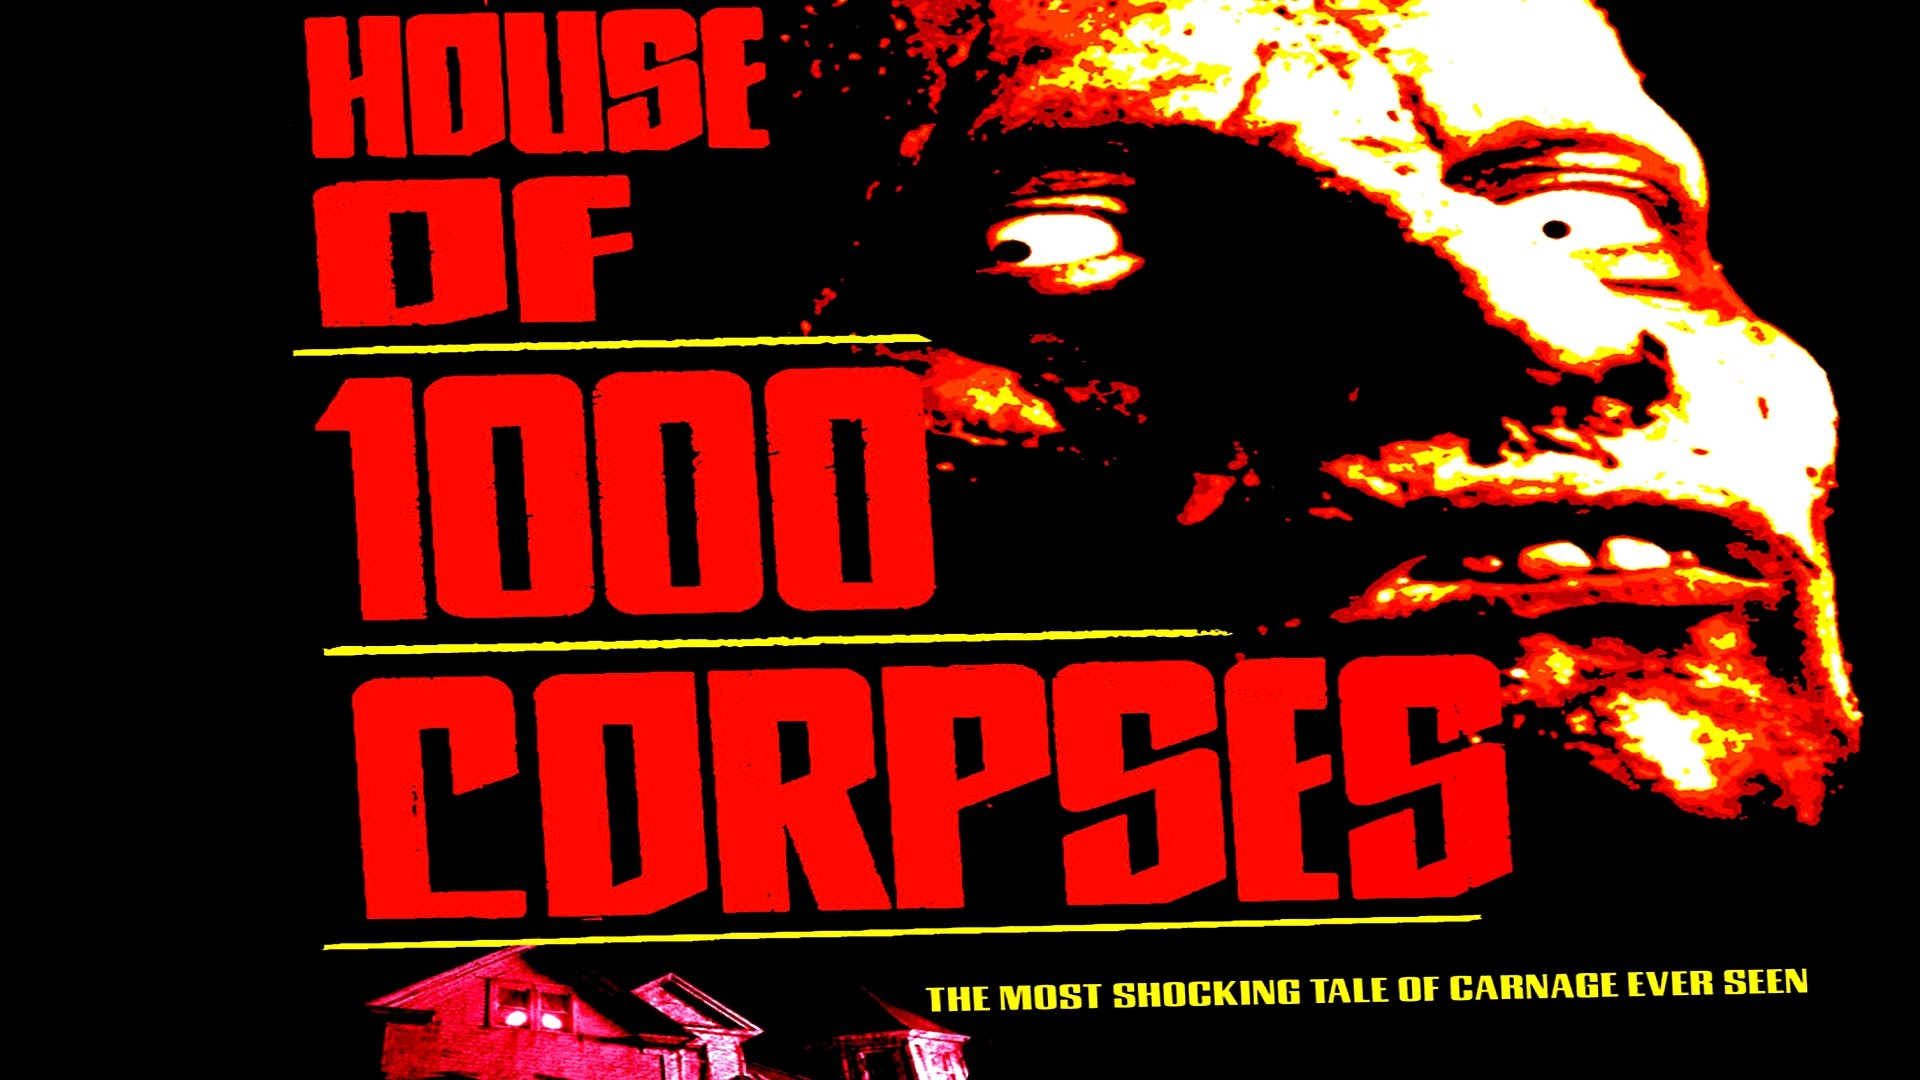 House Quotes Wallpaper Download House Of 1000 Corpses Wallpaper Gallery